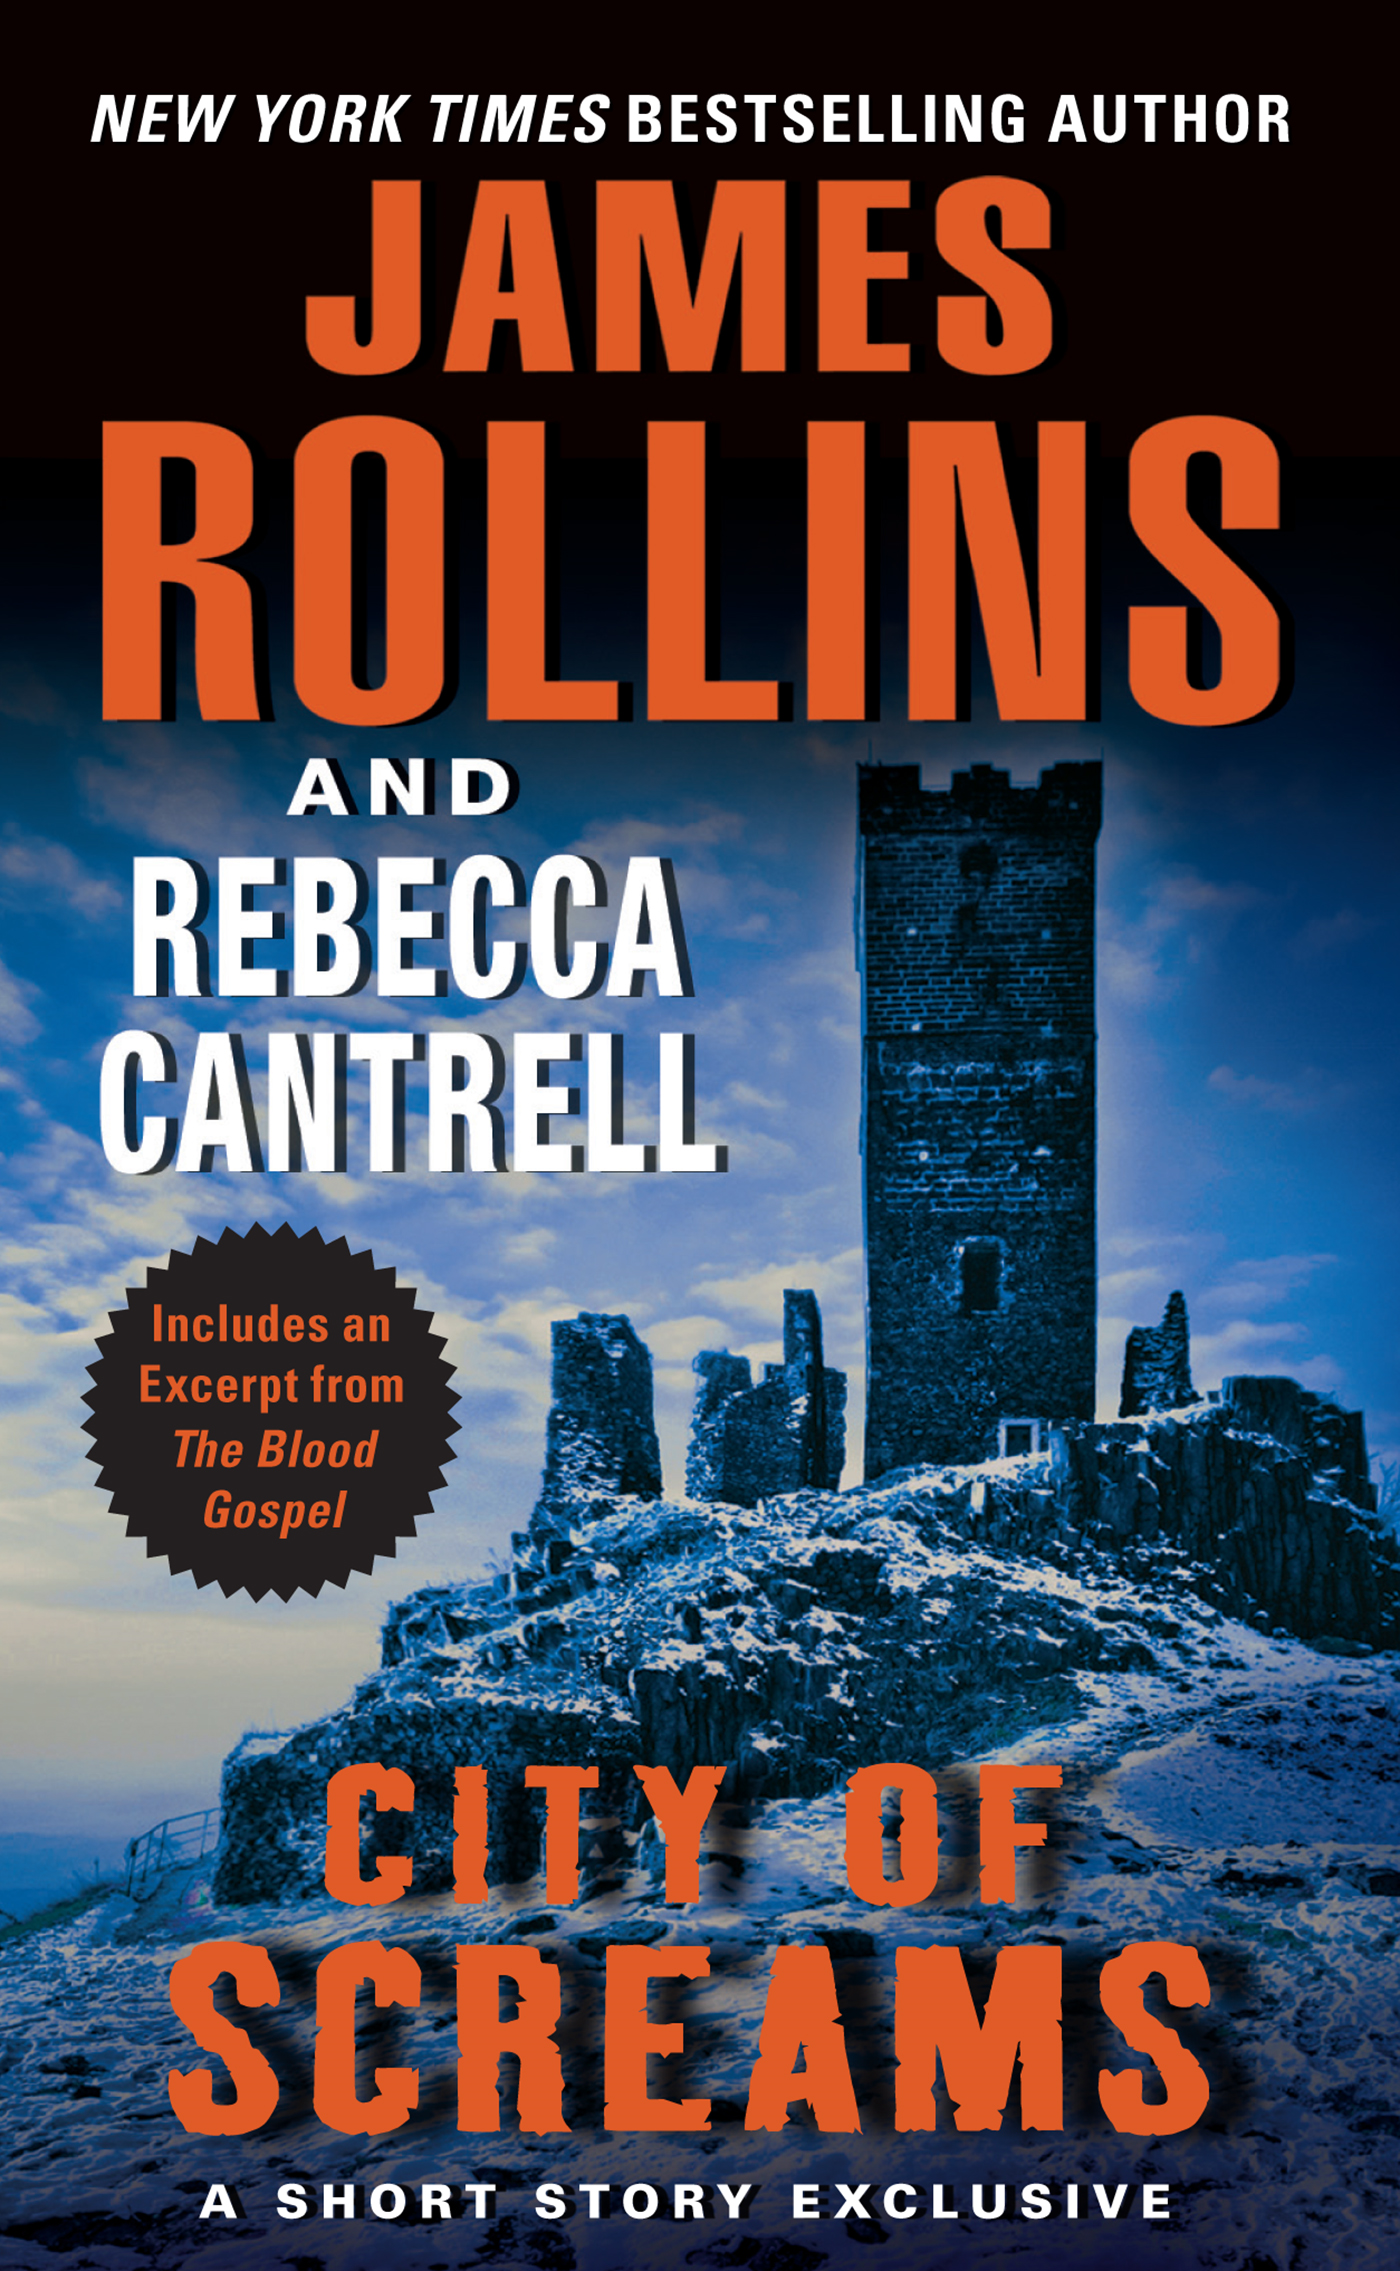 City of Screams By: James Rollins,Rebecca Cantrell